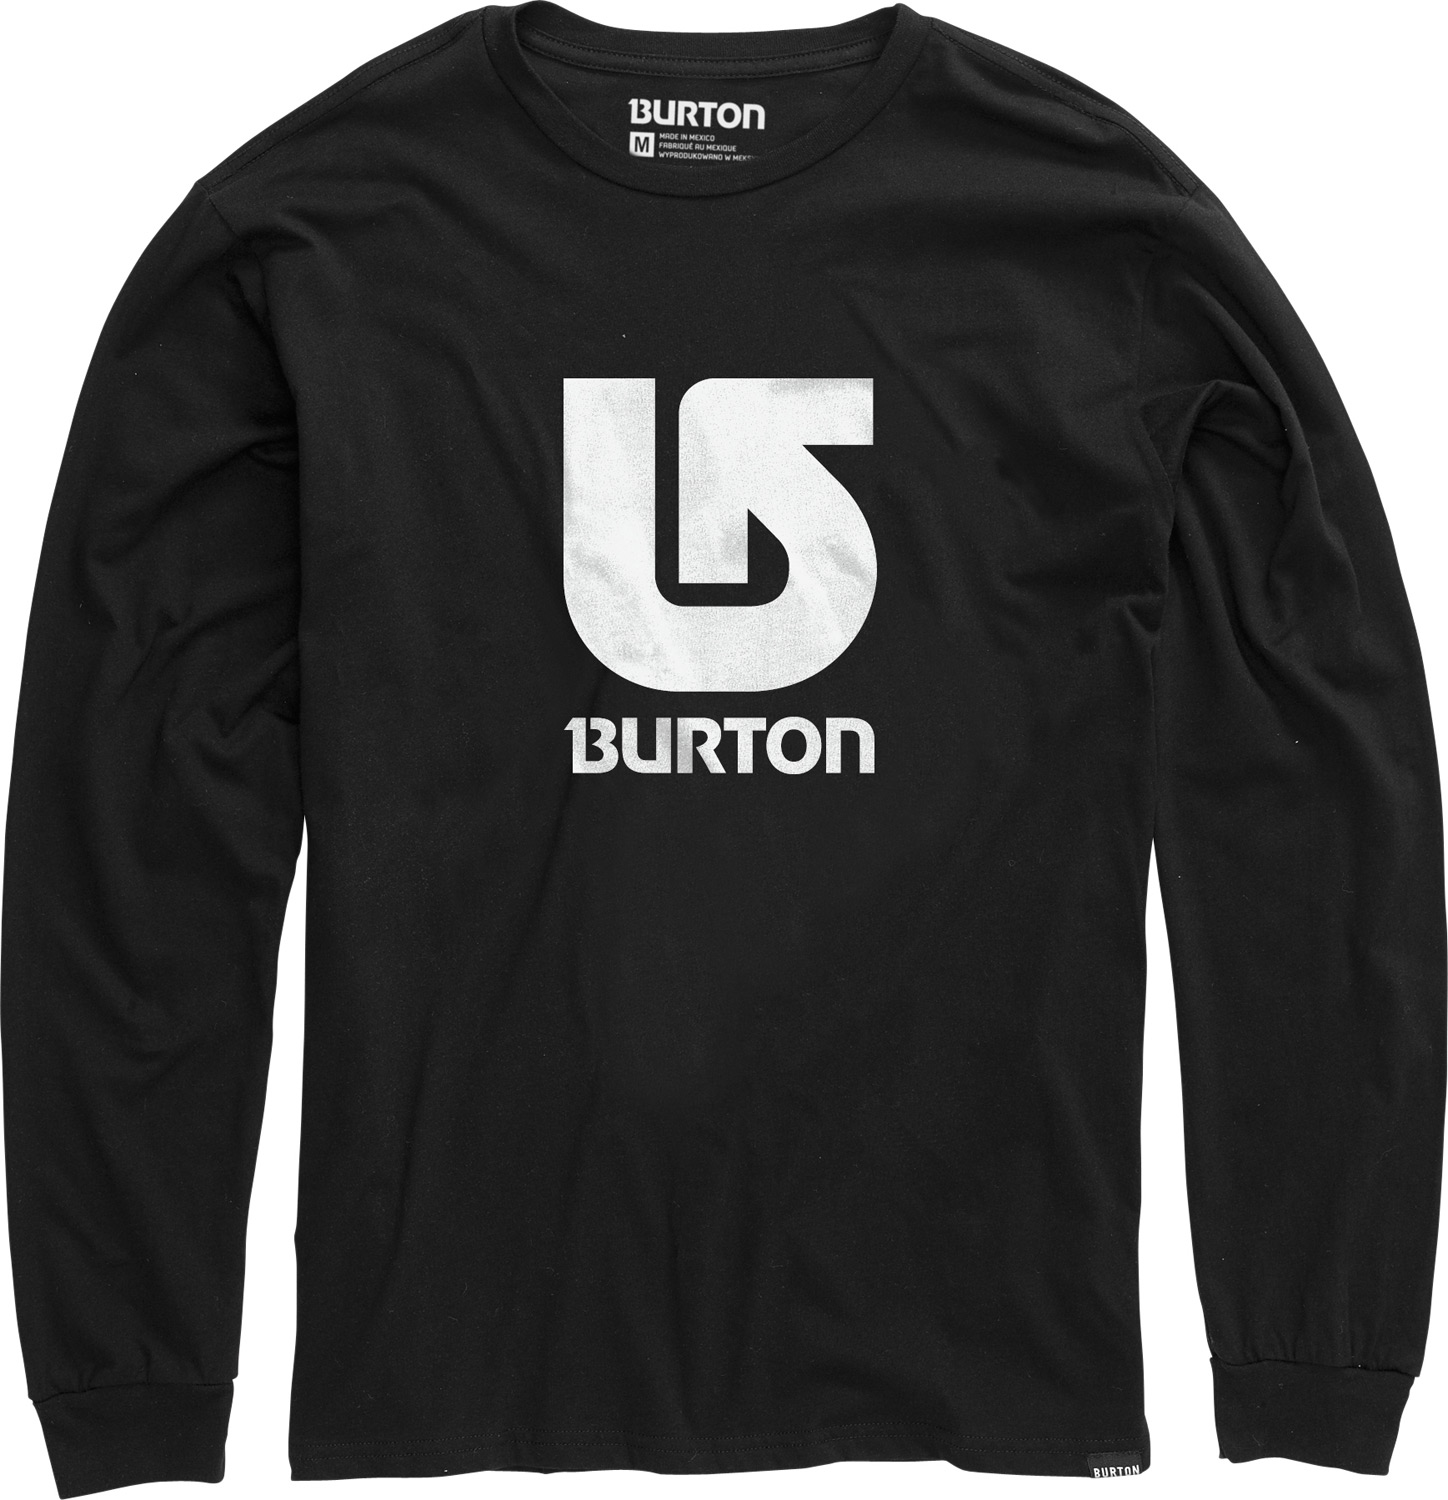 Snowboard Perfect for those mildly cold days leading into winter, the Burton Logo Vertical L/S T-Shirt will keep you nice and warm. With the shirts featured 100% cotton and long sleeves, you are guaranteed warmth no matter where you go. Anything from snow, to severe wind chill, the Burton Logo Vertical L/S T-Shirt has got you covered!Key Features of the Burton Logo Vertical L/S T-Shirt:  100% Cotton  Screen Print on Front  Regular Fit - $17.95